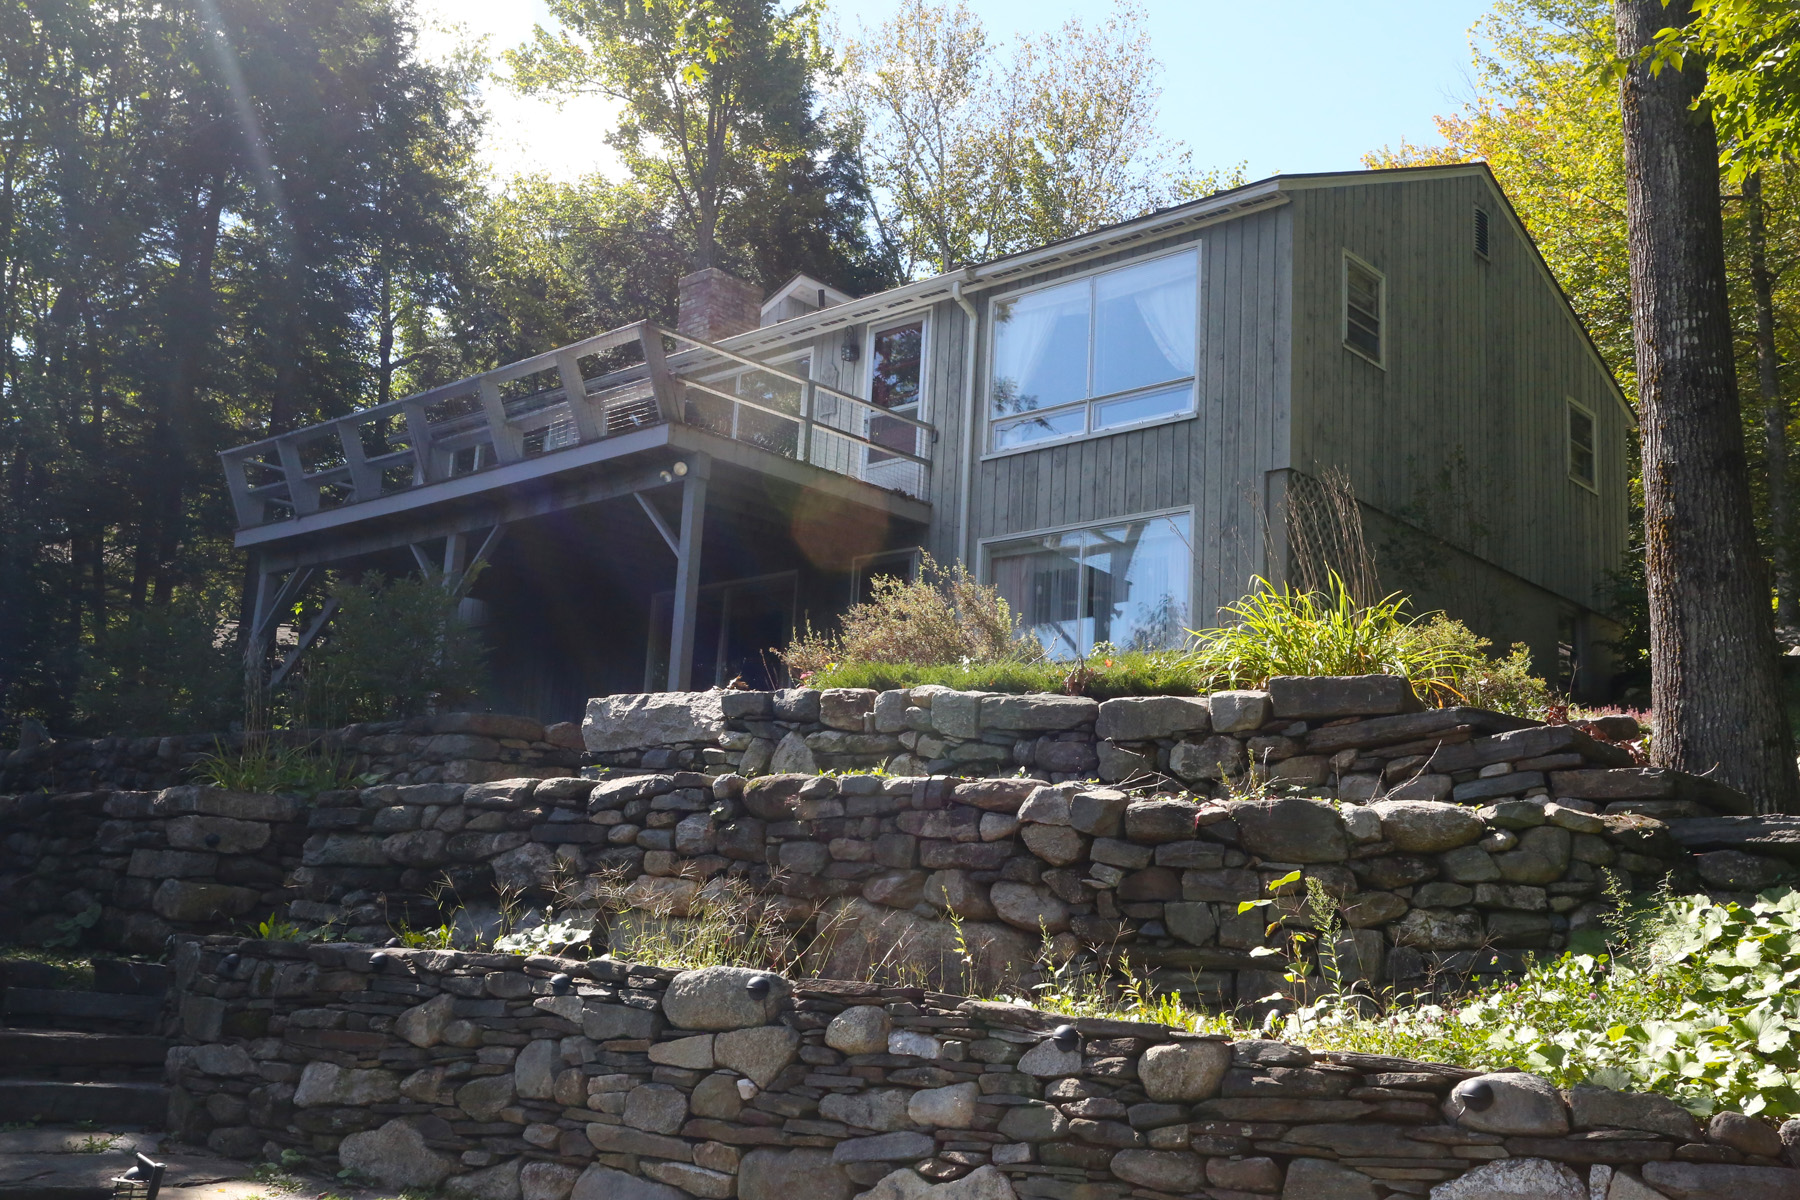 Single Family Home for Sale at 4 Bedroom Contempora 21 Westwood Rd Sunapee, New Hampshire 03782 United States